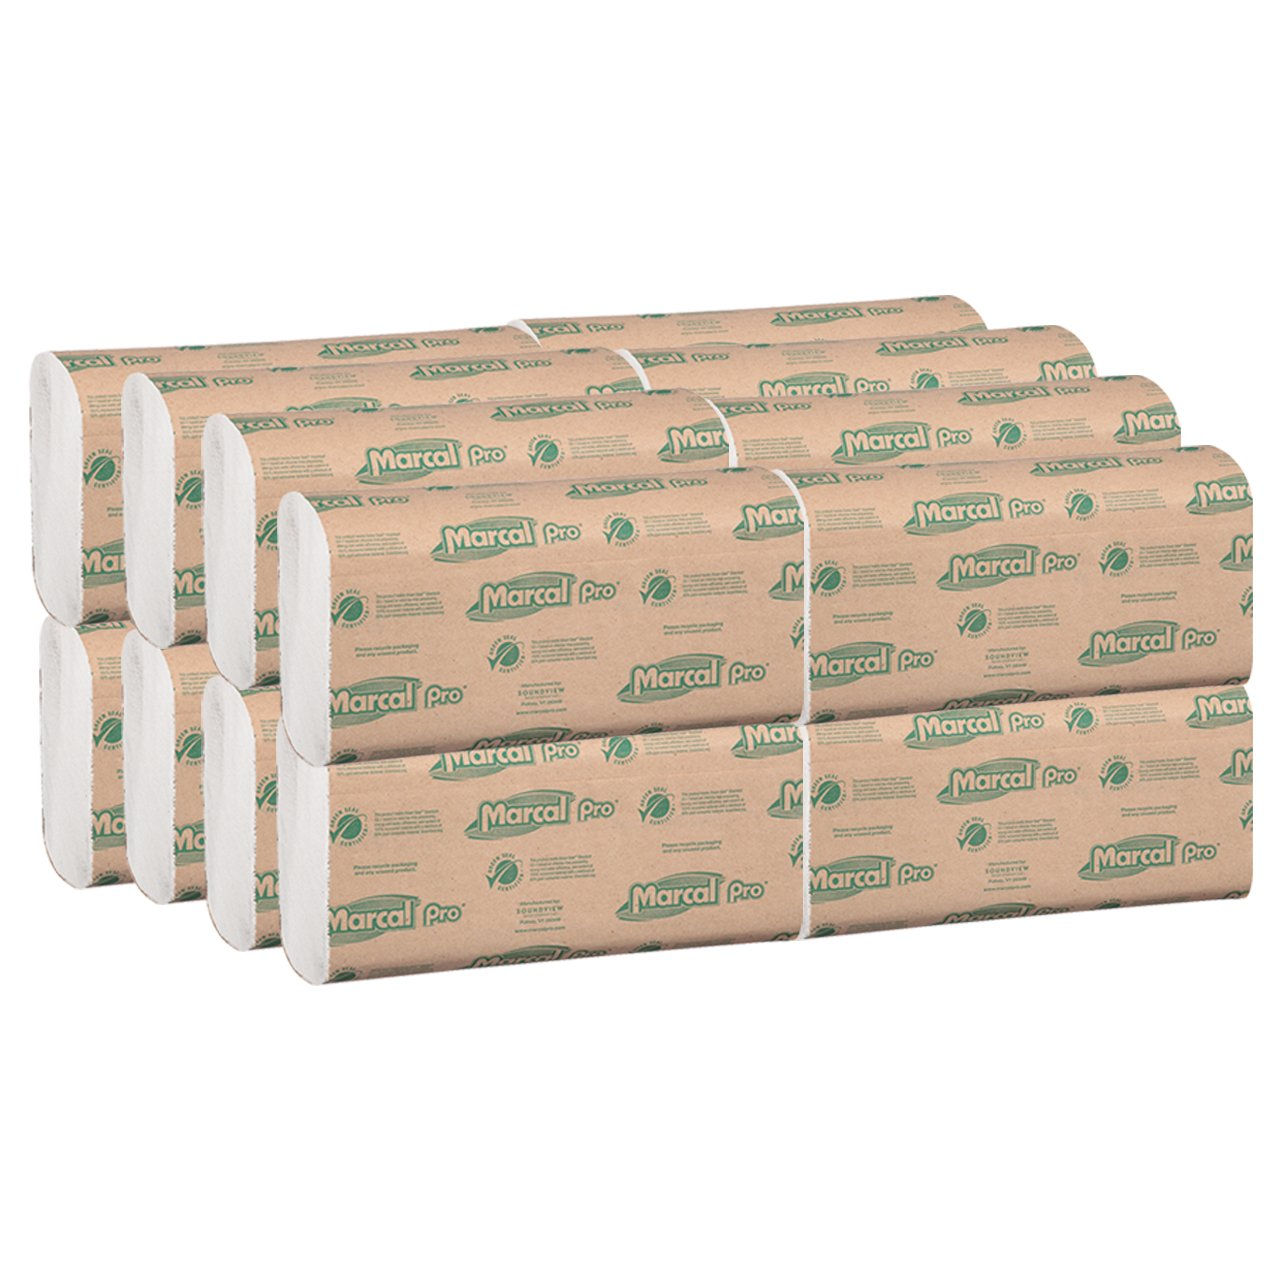 Marcal Pro M Fold Paper Towels 100% Recycled 1 Ply Natural Color Hand Towels 250 Per Pack 16 Packs per Case for 4000 Total Green Seal Certified Towels P200B